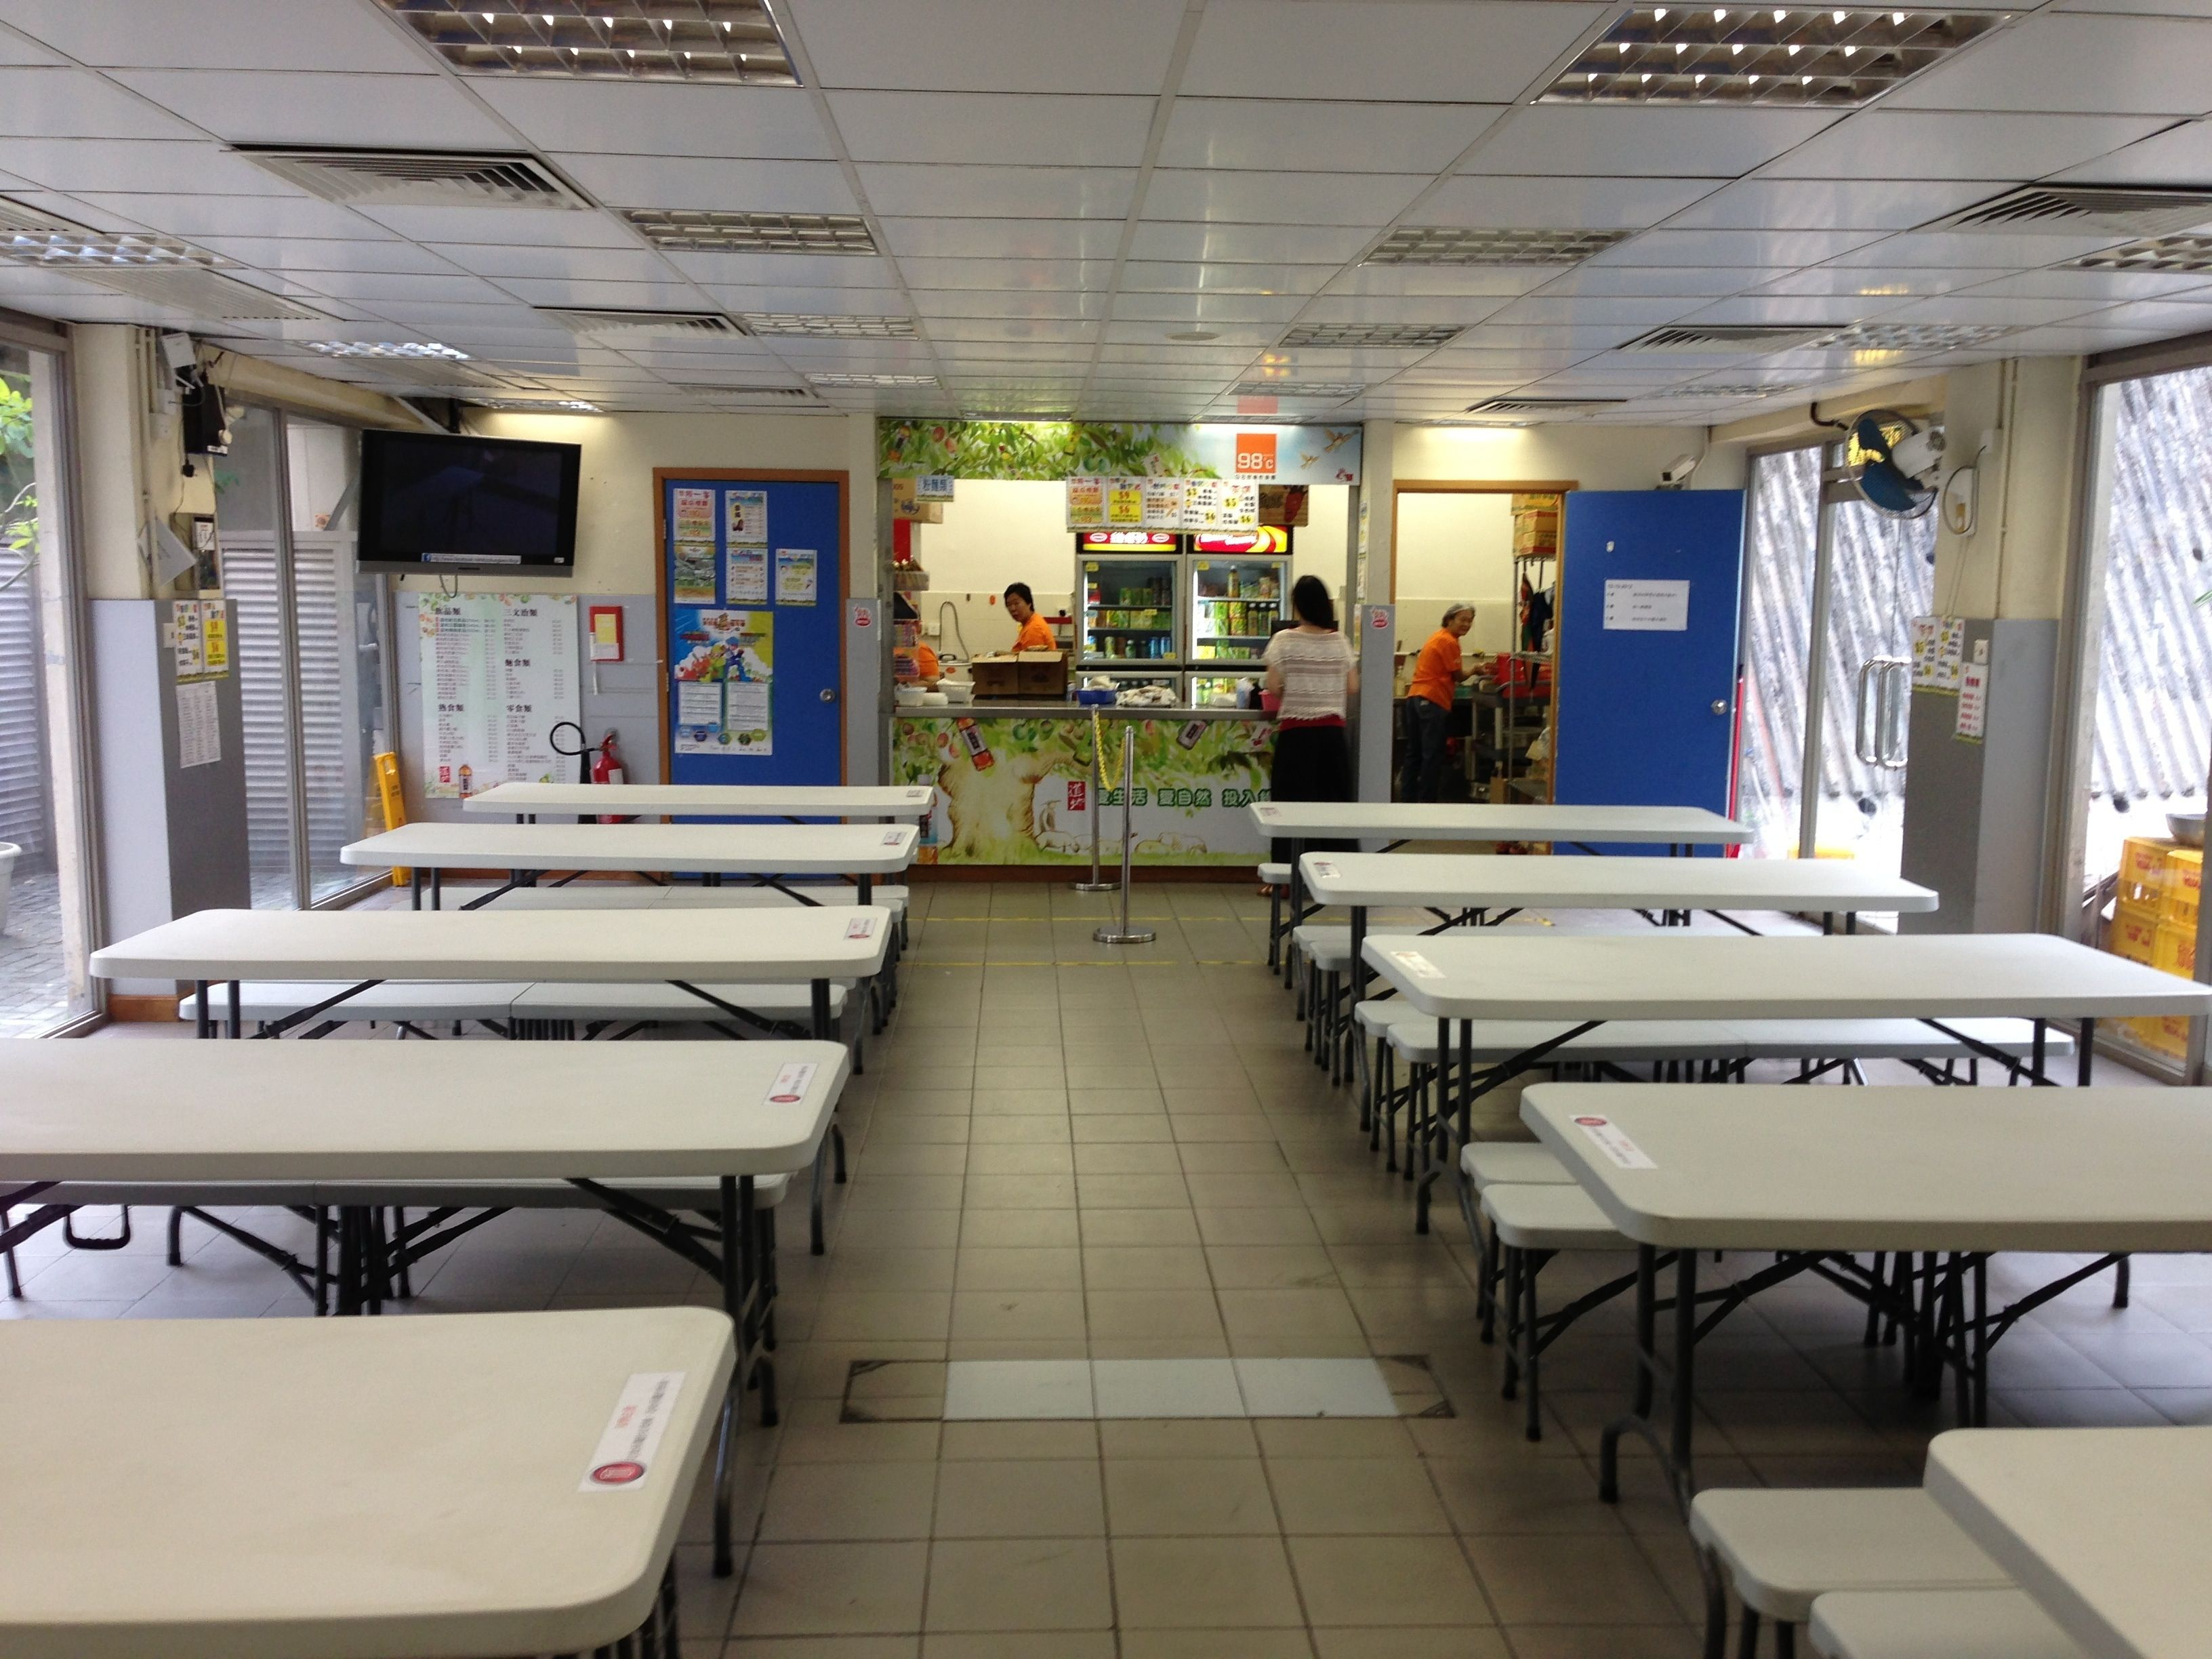 school canteen interior design with long table